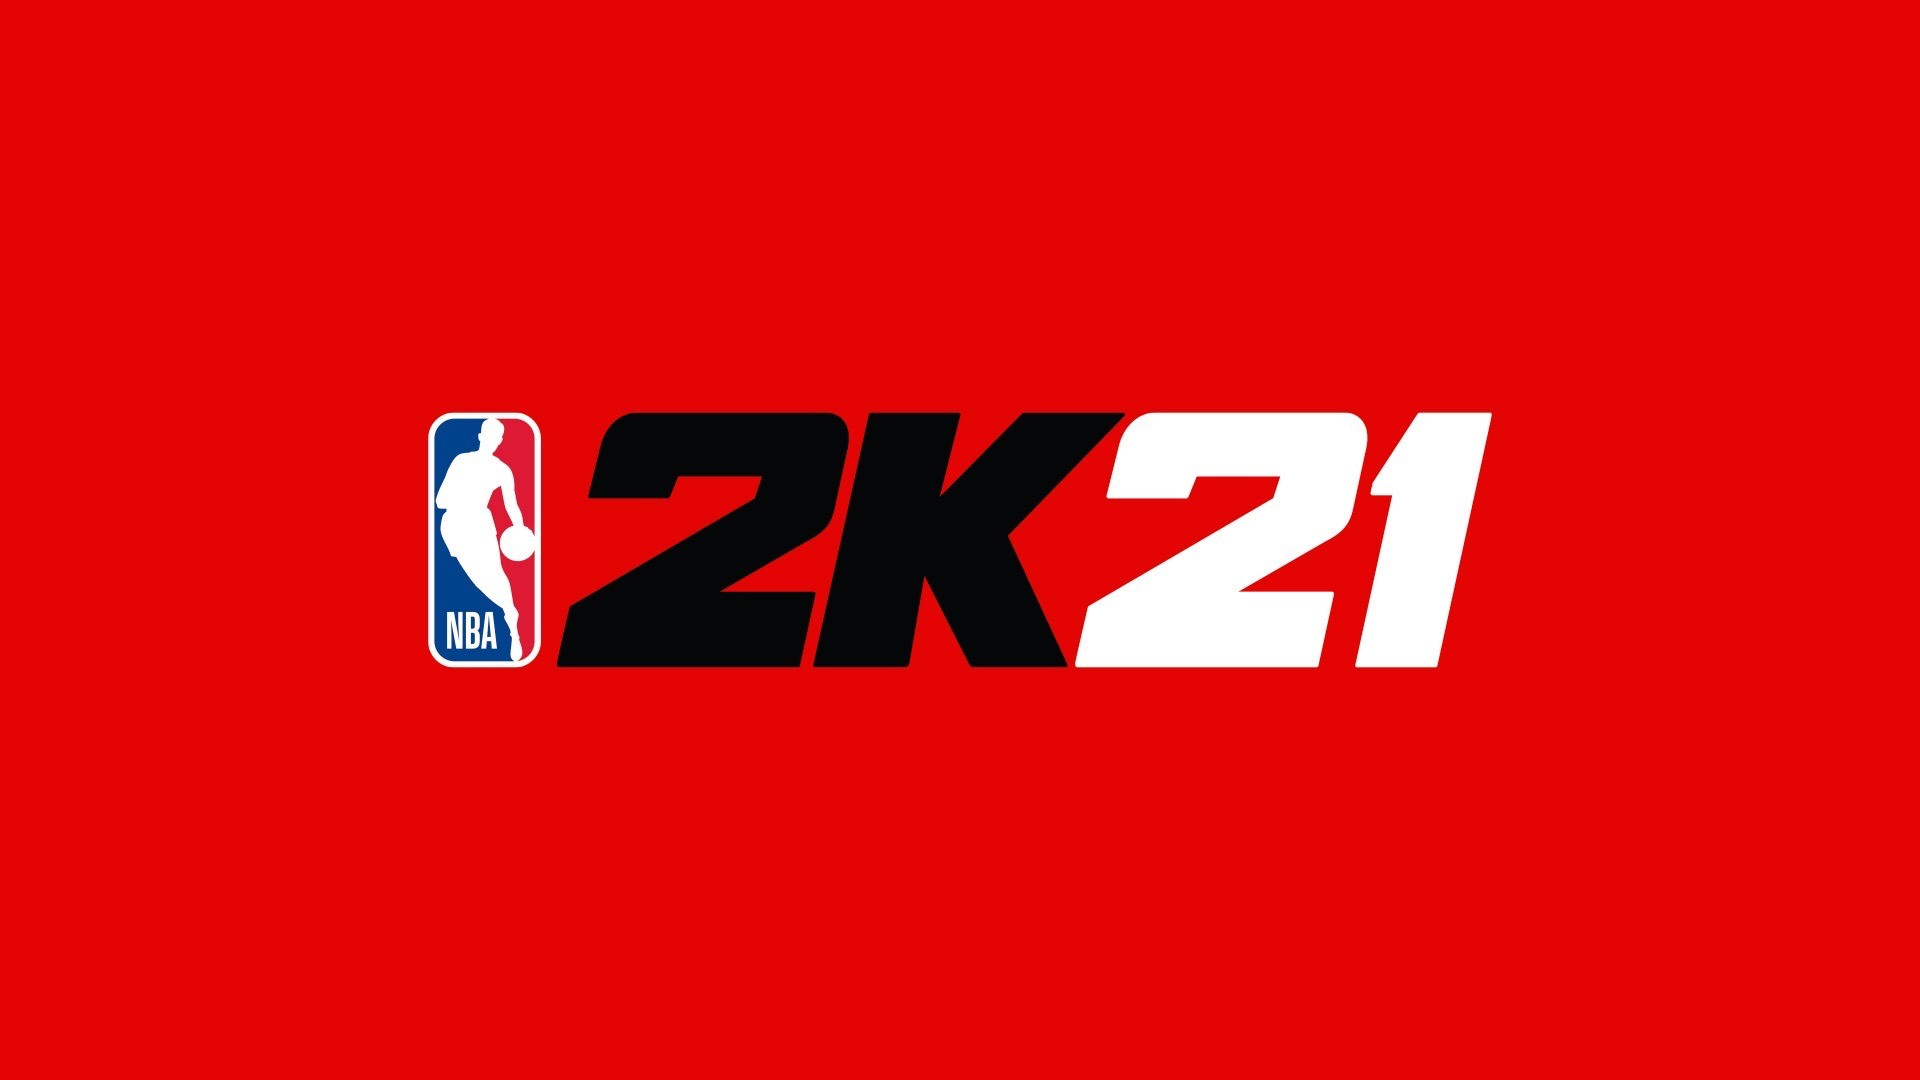 Lillard named National Basketball Association 2K21 cover athlete